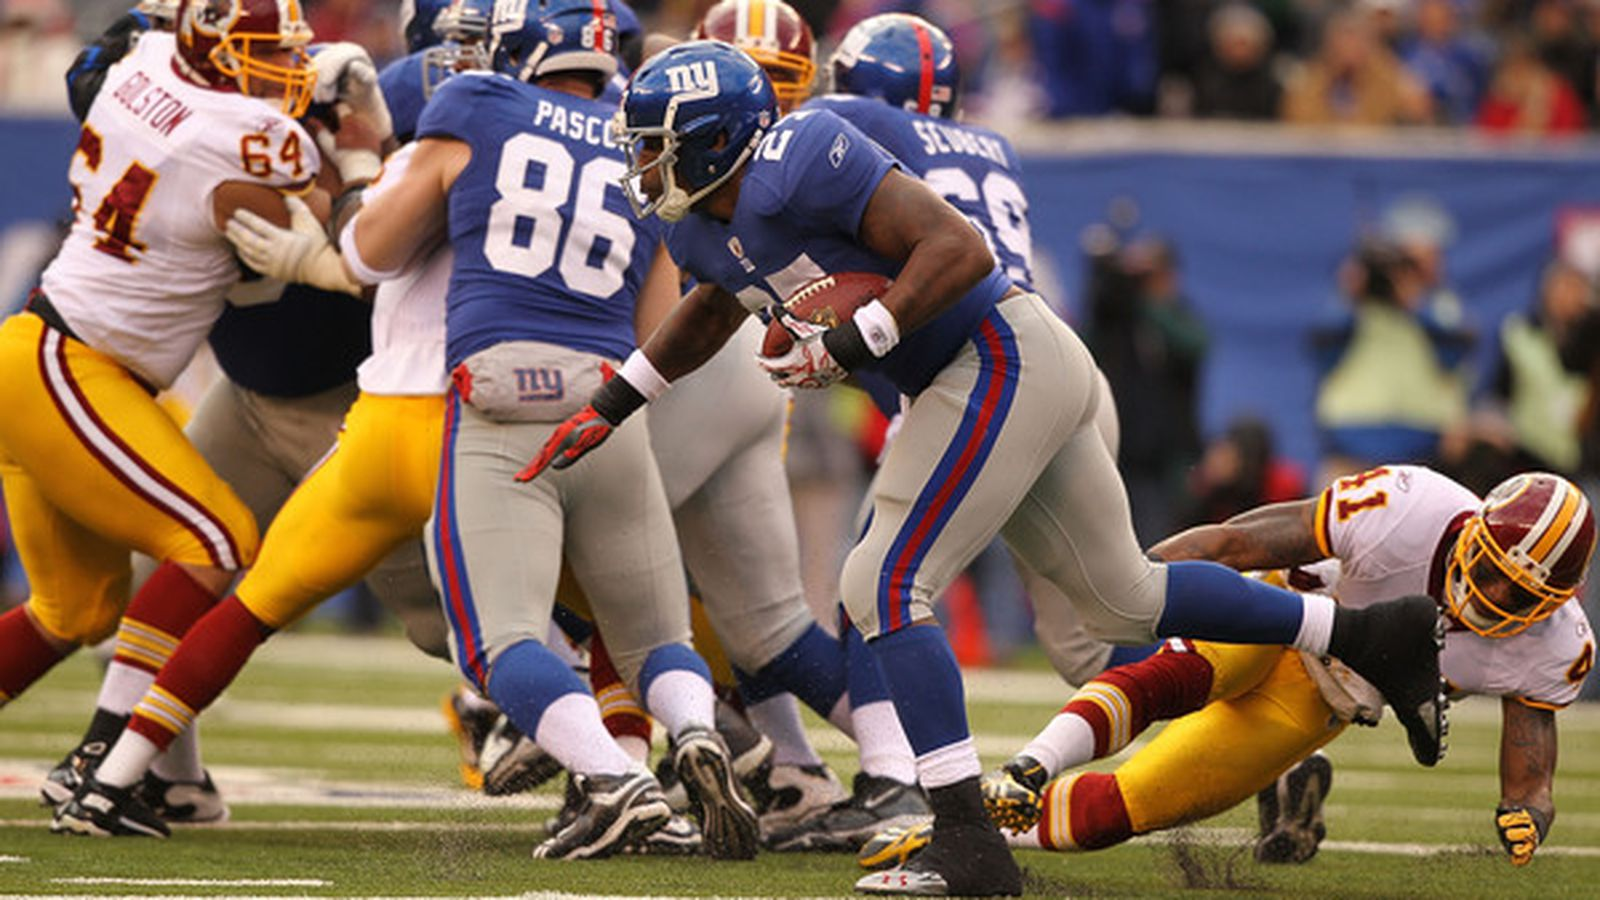 Check out all the highlights and stats from the Redskins win over the Giants on Thanksgiving night